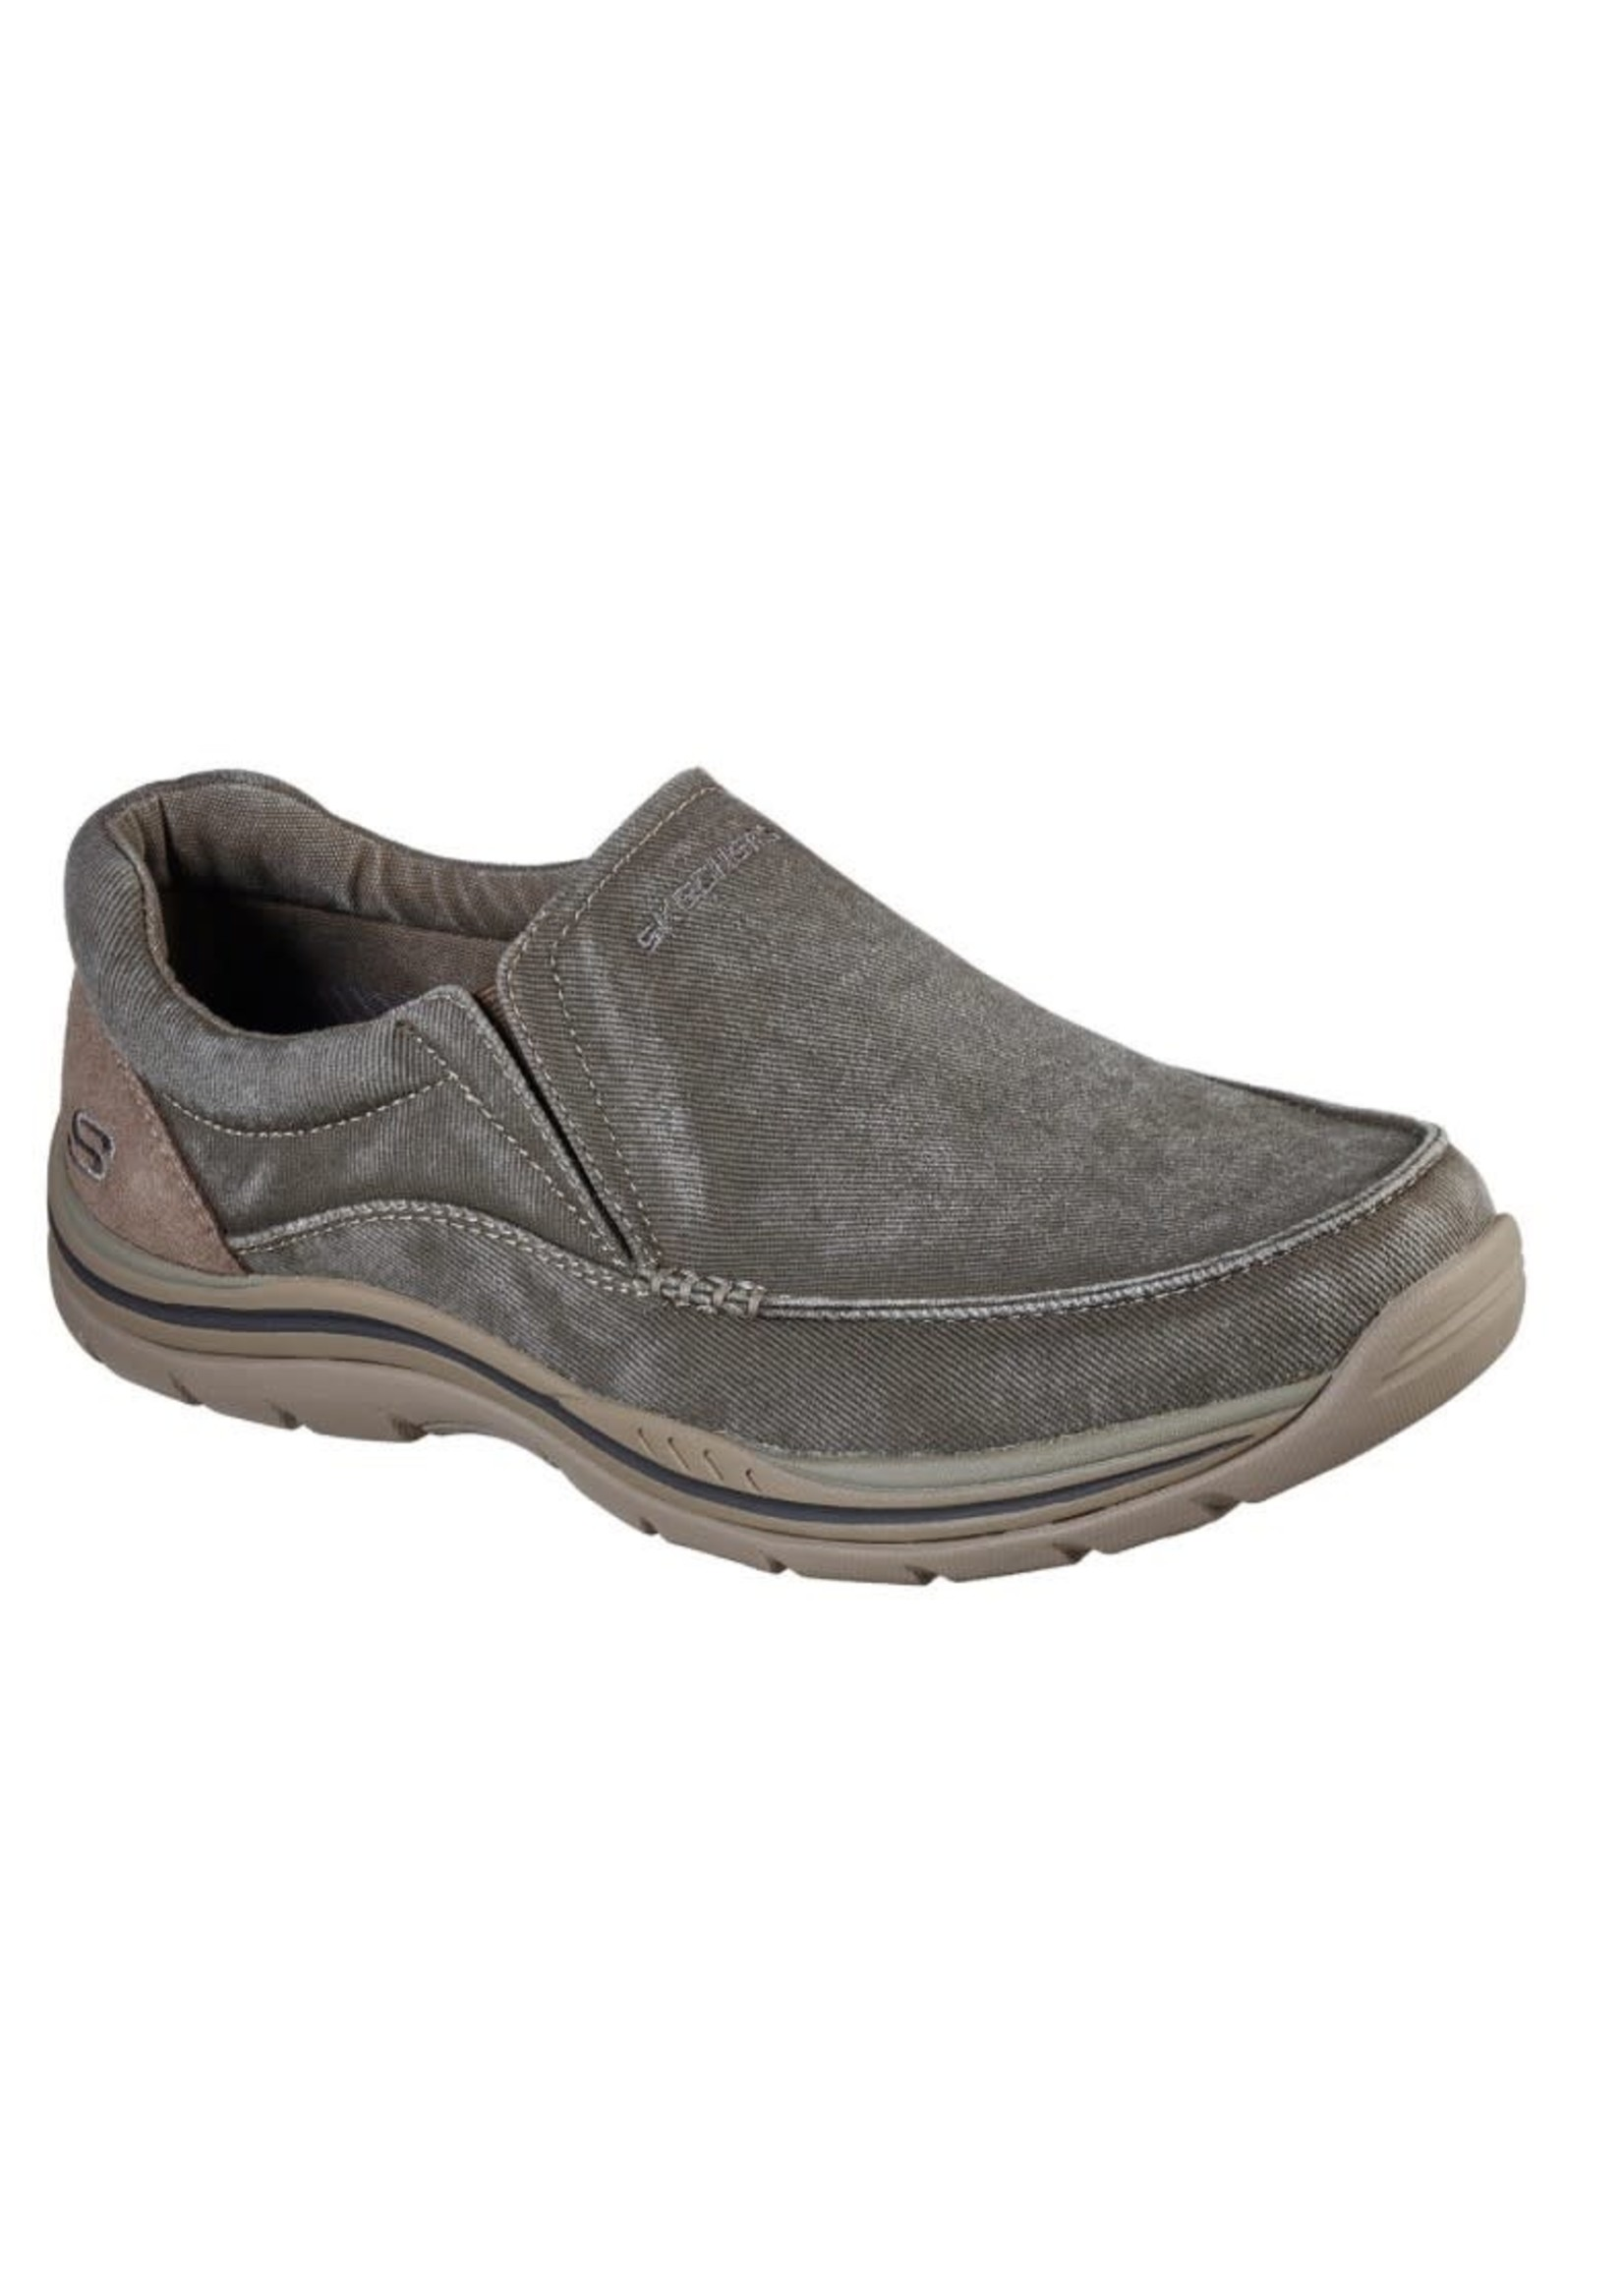 Skechers WIDE FIT: EXPECTED-AVILLO 64109